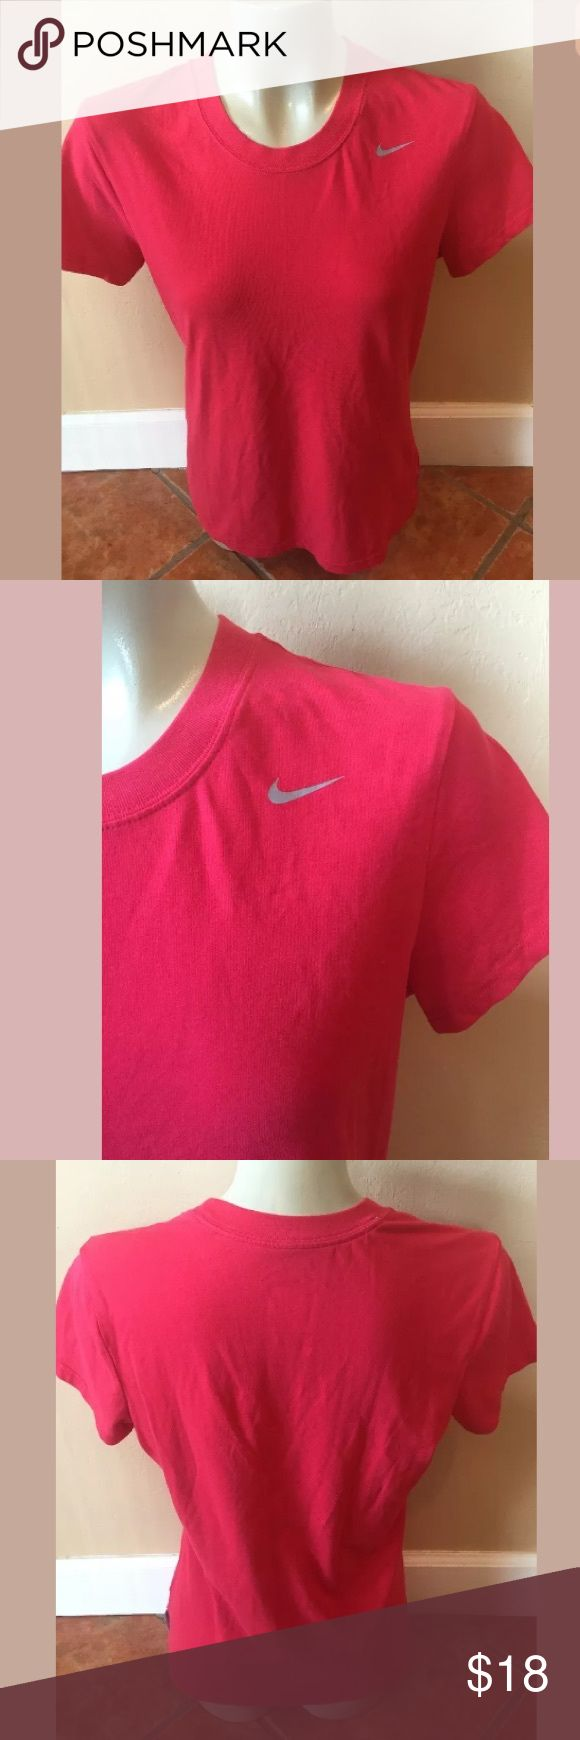 NIKE Dri Fit Cotton Tee Shirt Red Women's Exercise NIKE Dri Fit Cotton Tee Shirt Red Women's Exercise Athletic Shirt  Size Medium M Preowned Nike Tops Tees - Short Sleeve